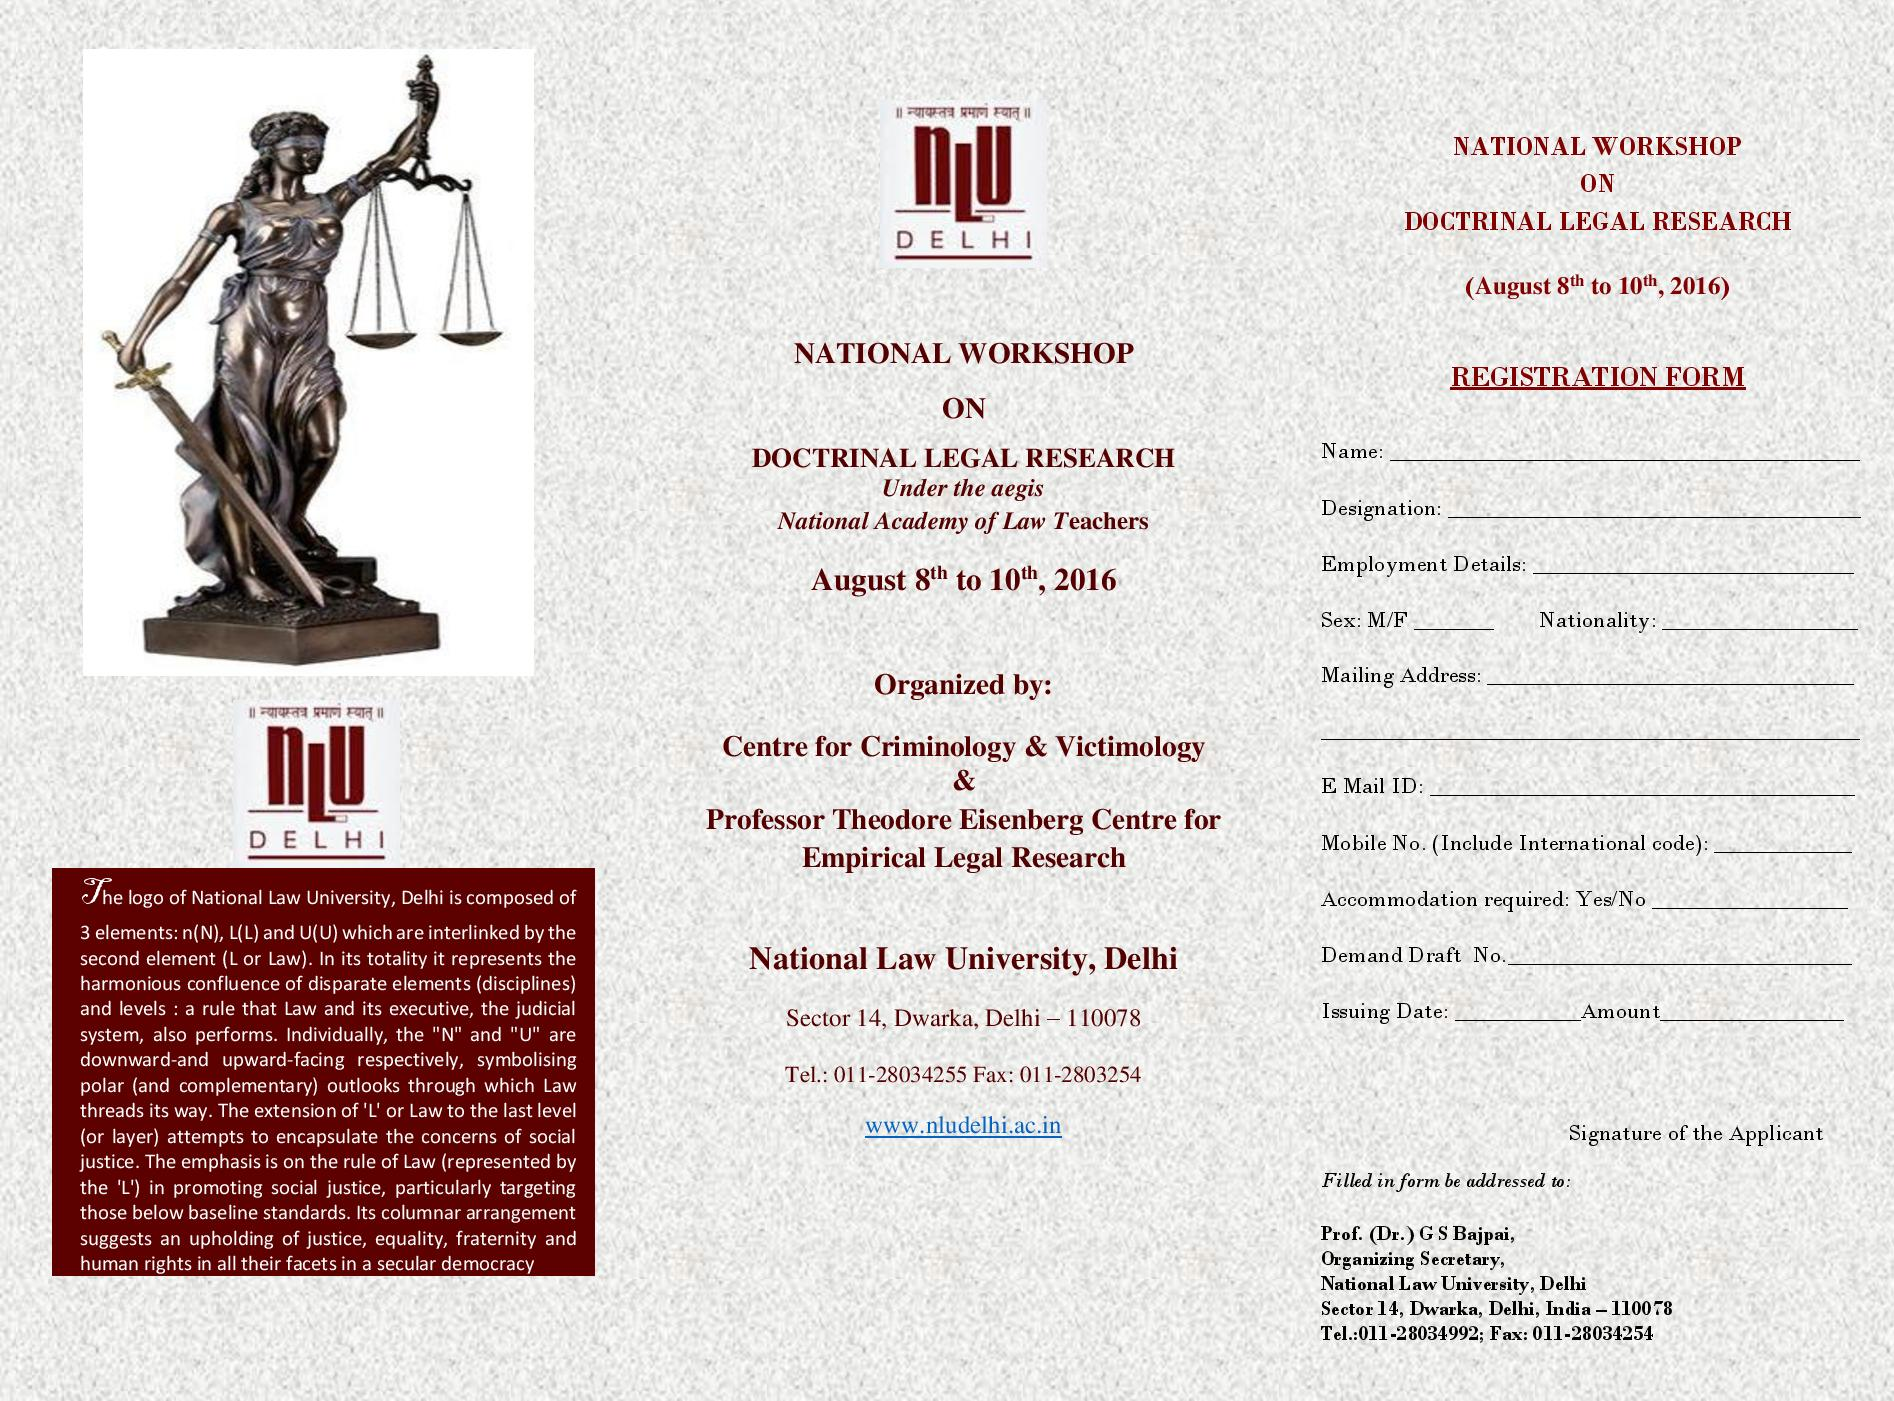 NLU Delhi's National Workshop on Doctrinal Legal Research